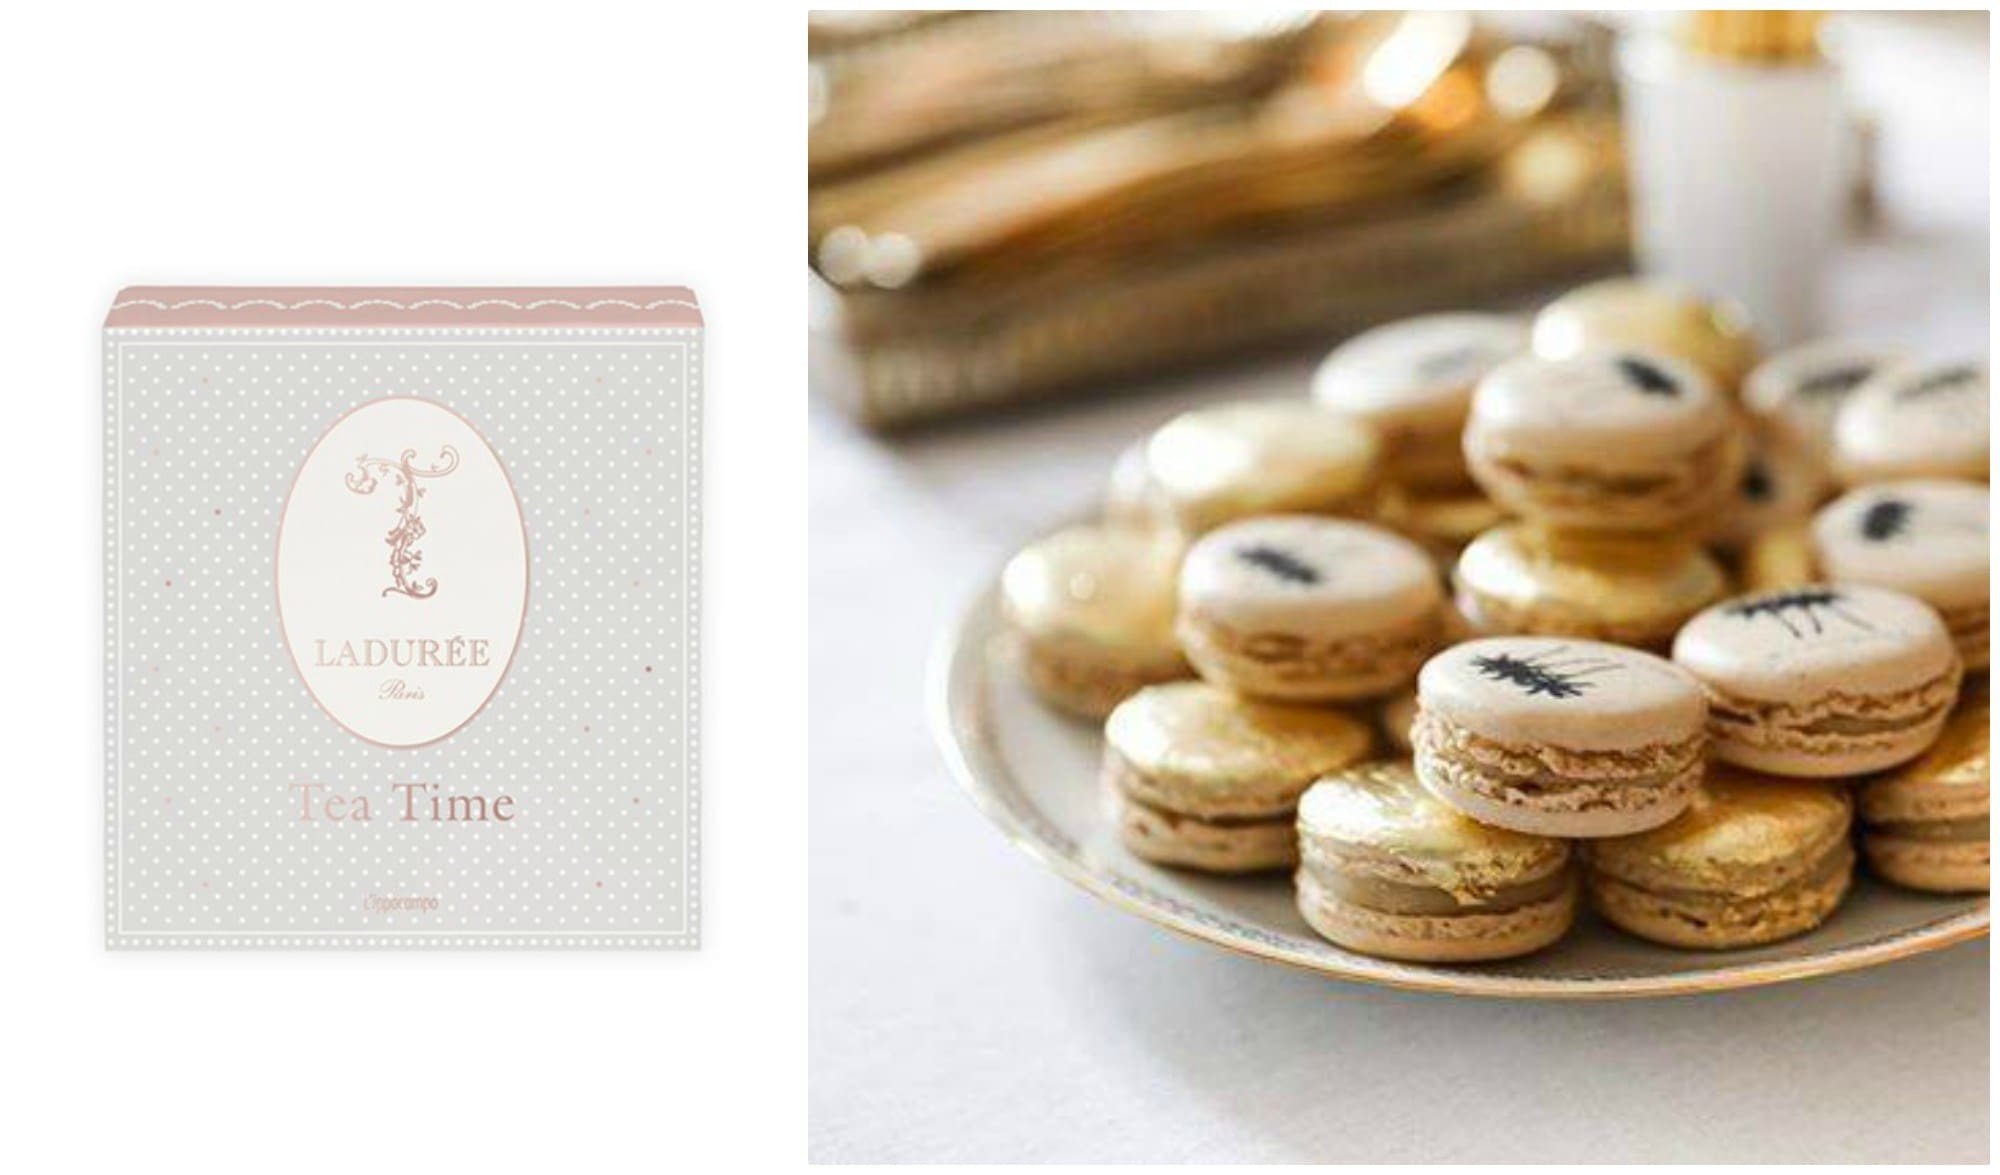 Ladurée Tea Time